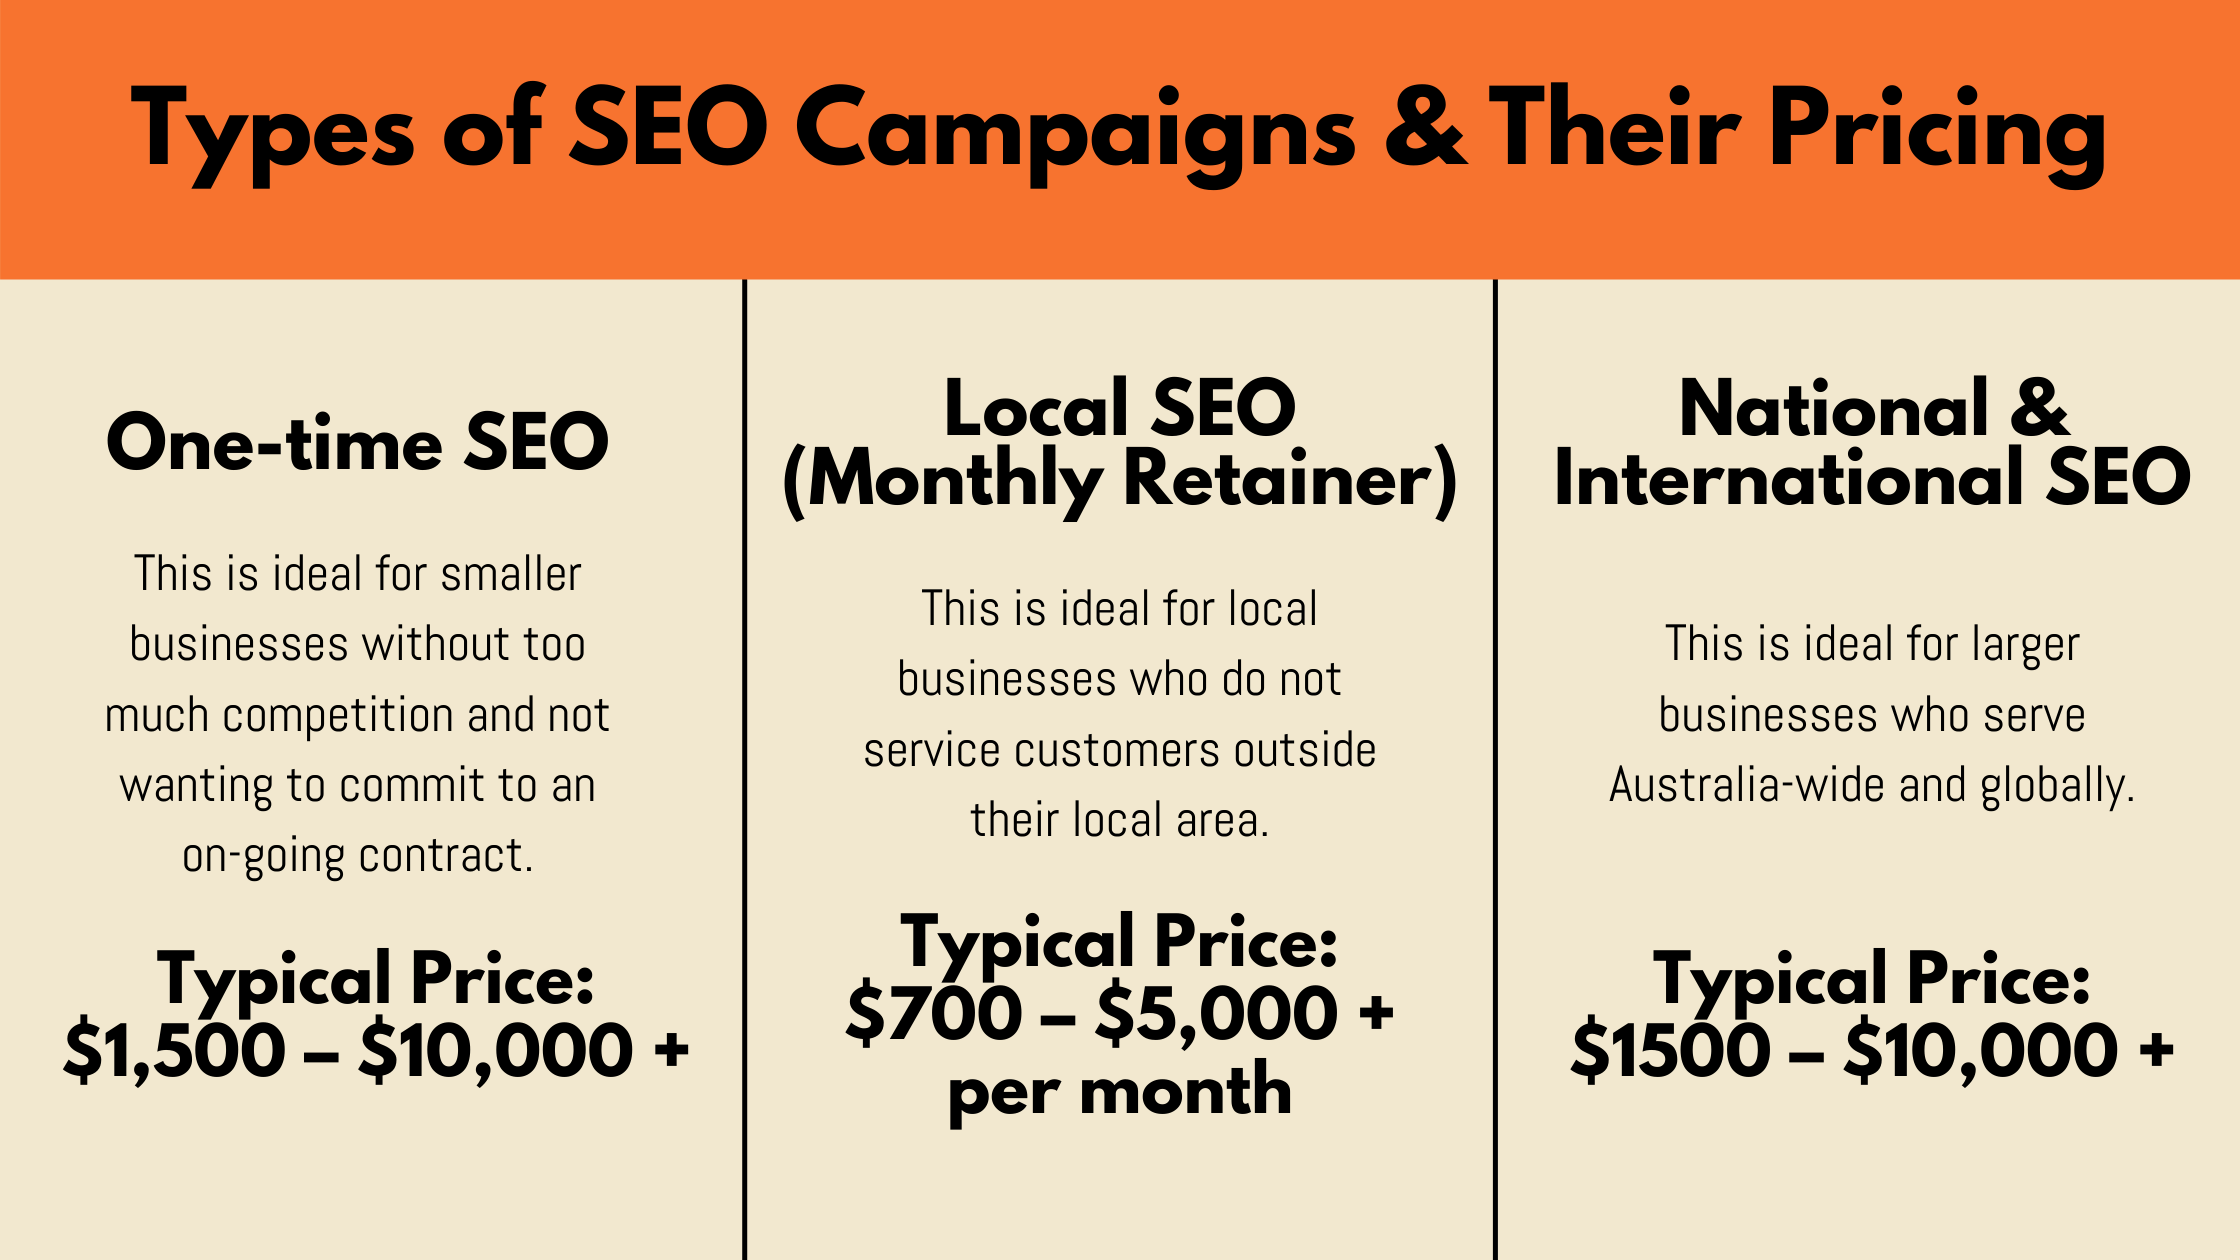 Types of SEO Campaigns & Their Pricing